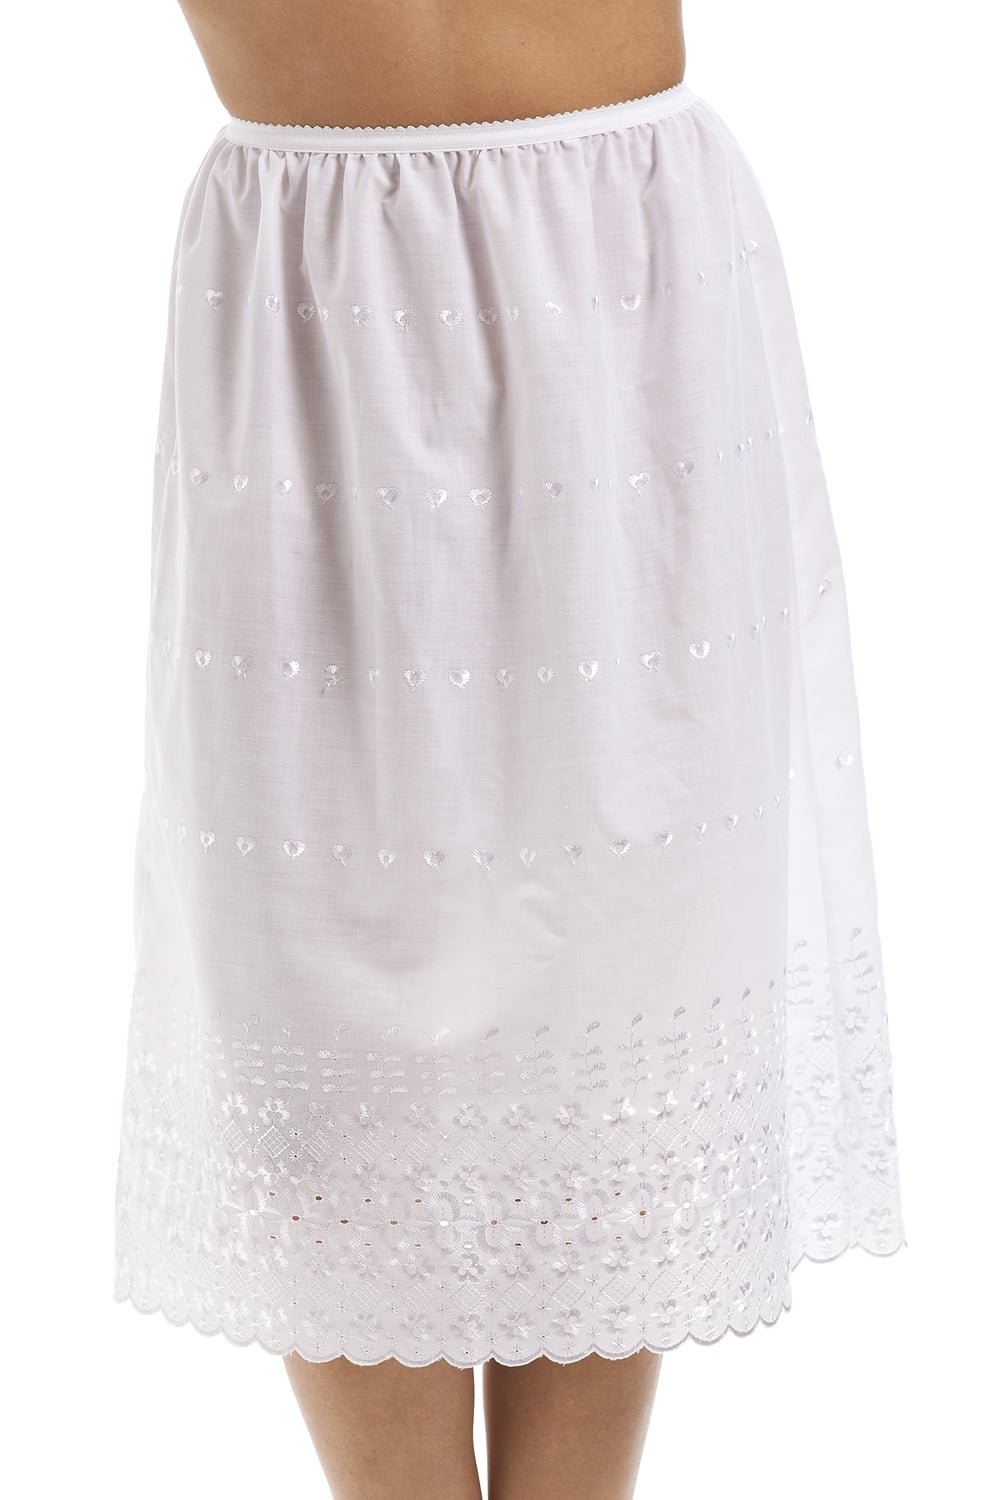 Camille Womens Classic White Embroidered 26'' Half Length Lace Trim Under Skirt Slip